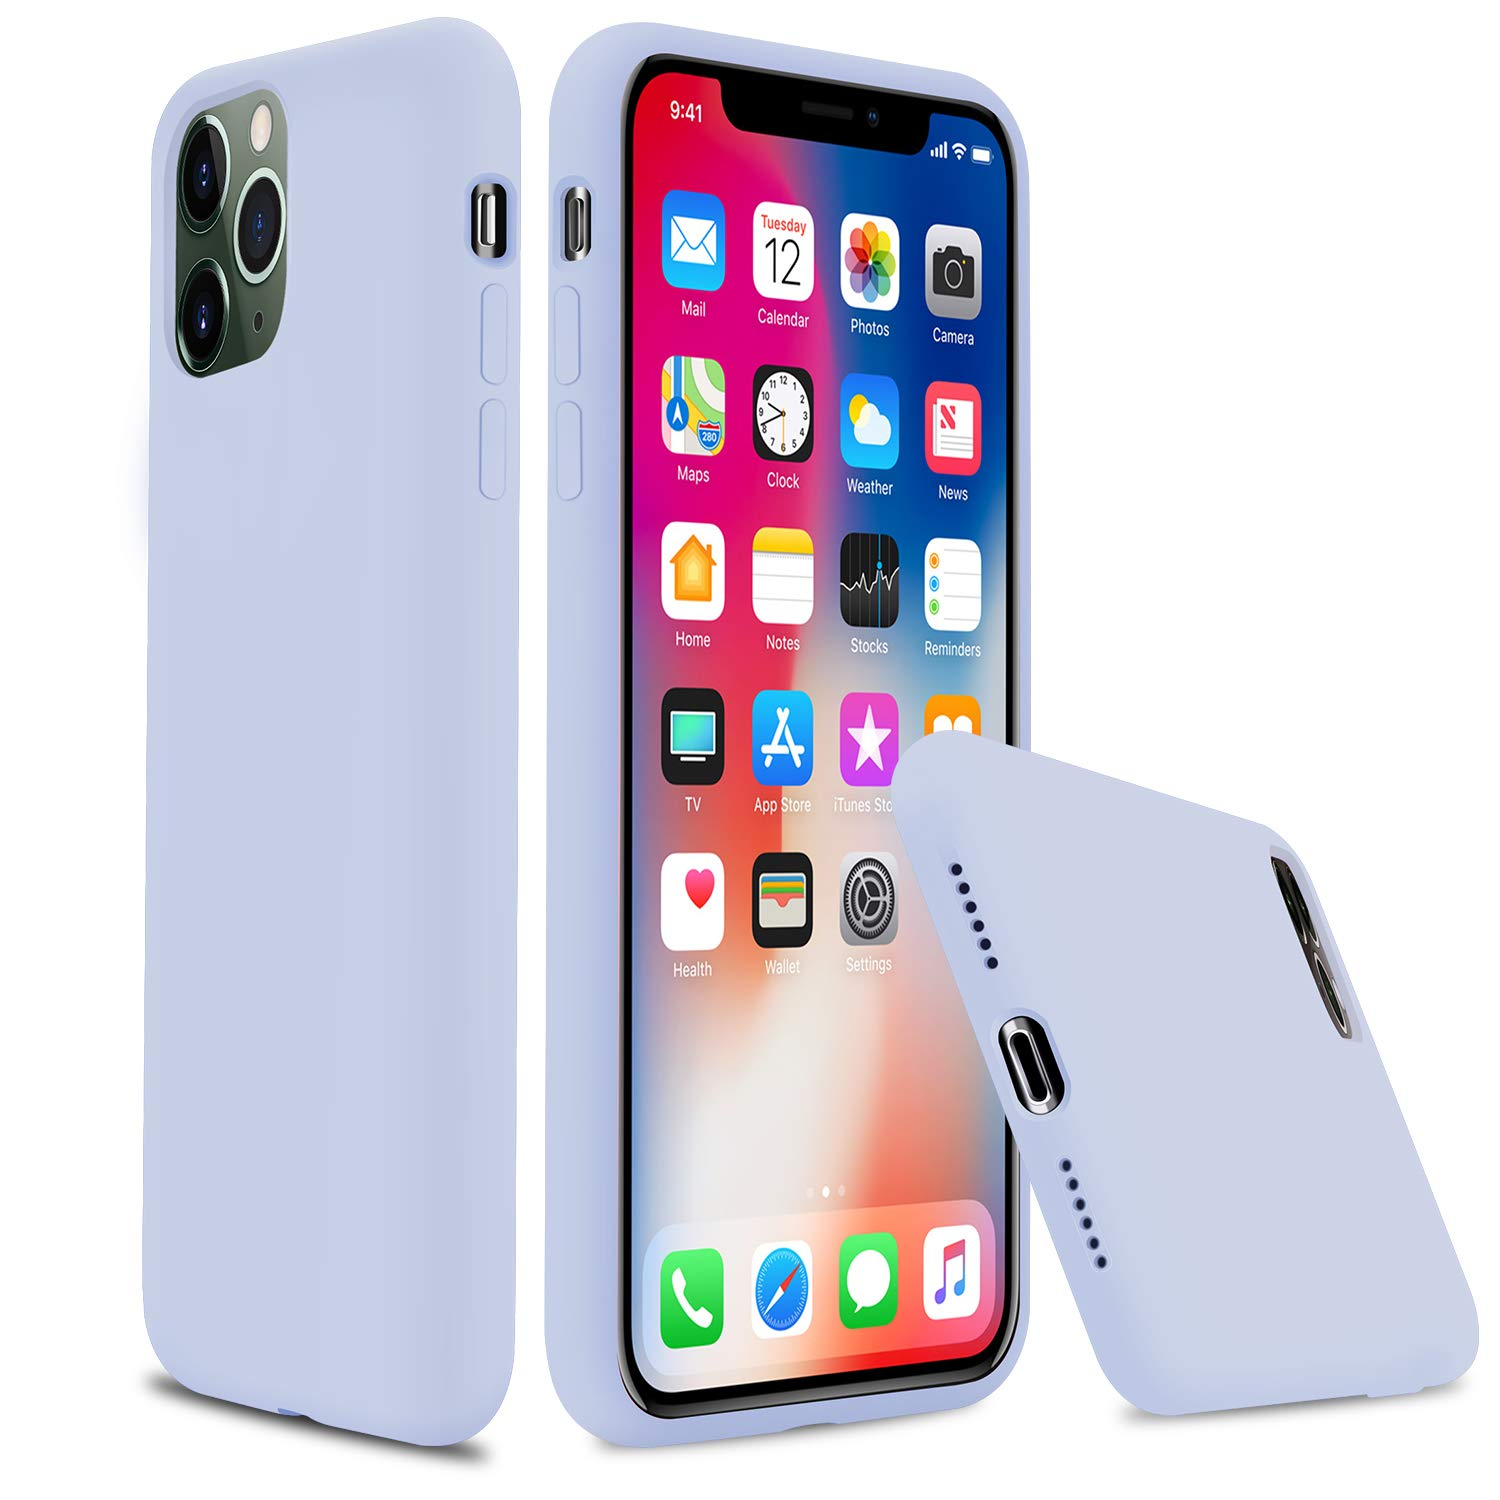 """Lopie iPhone 11 Silicone Case, [Silky Series] All-Around Protection iPhone 11 Case, Slim Gel Rubber Phone Cover for iPhone 11 2019 (6.1""""), Light Blue"""